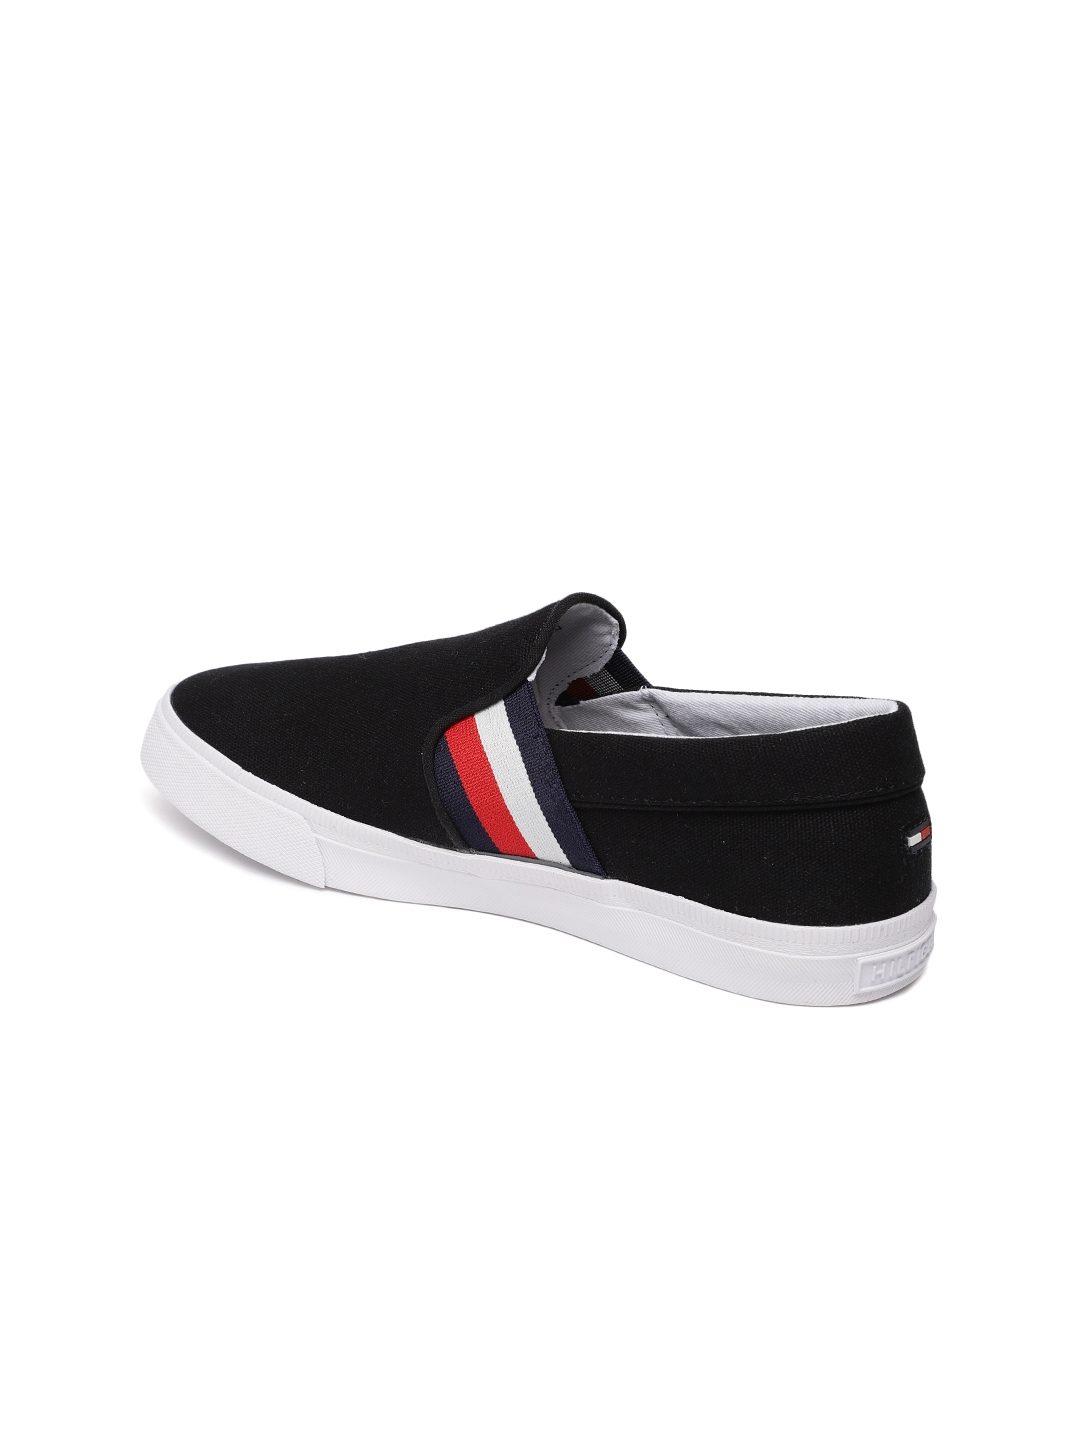 fdbc0992e Buy Tommy Hilfiger Women Black Slip On Sneakers - Casual Shoes for ...